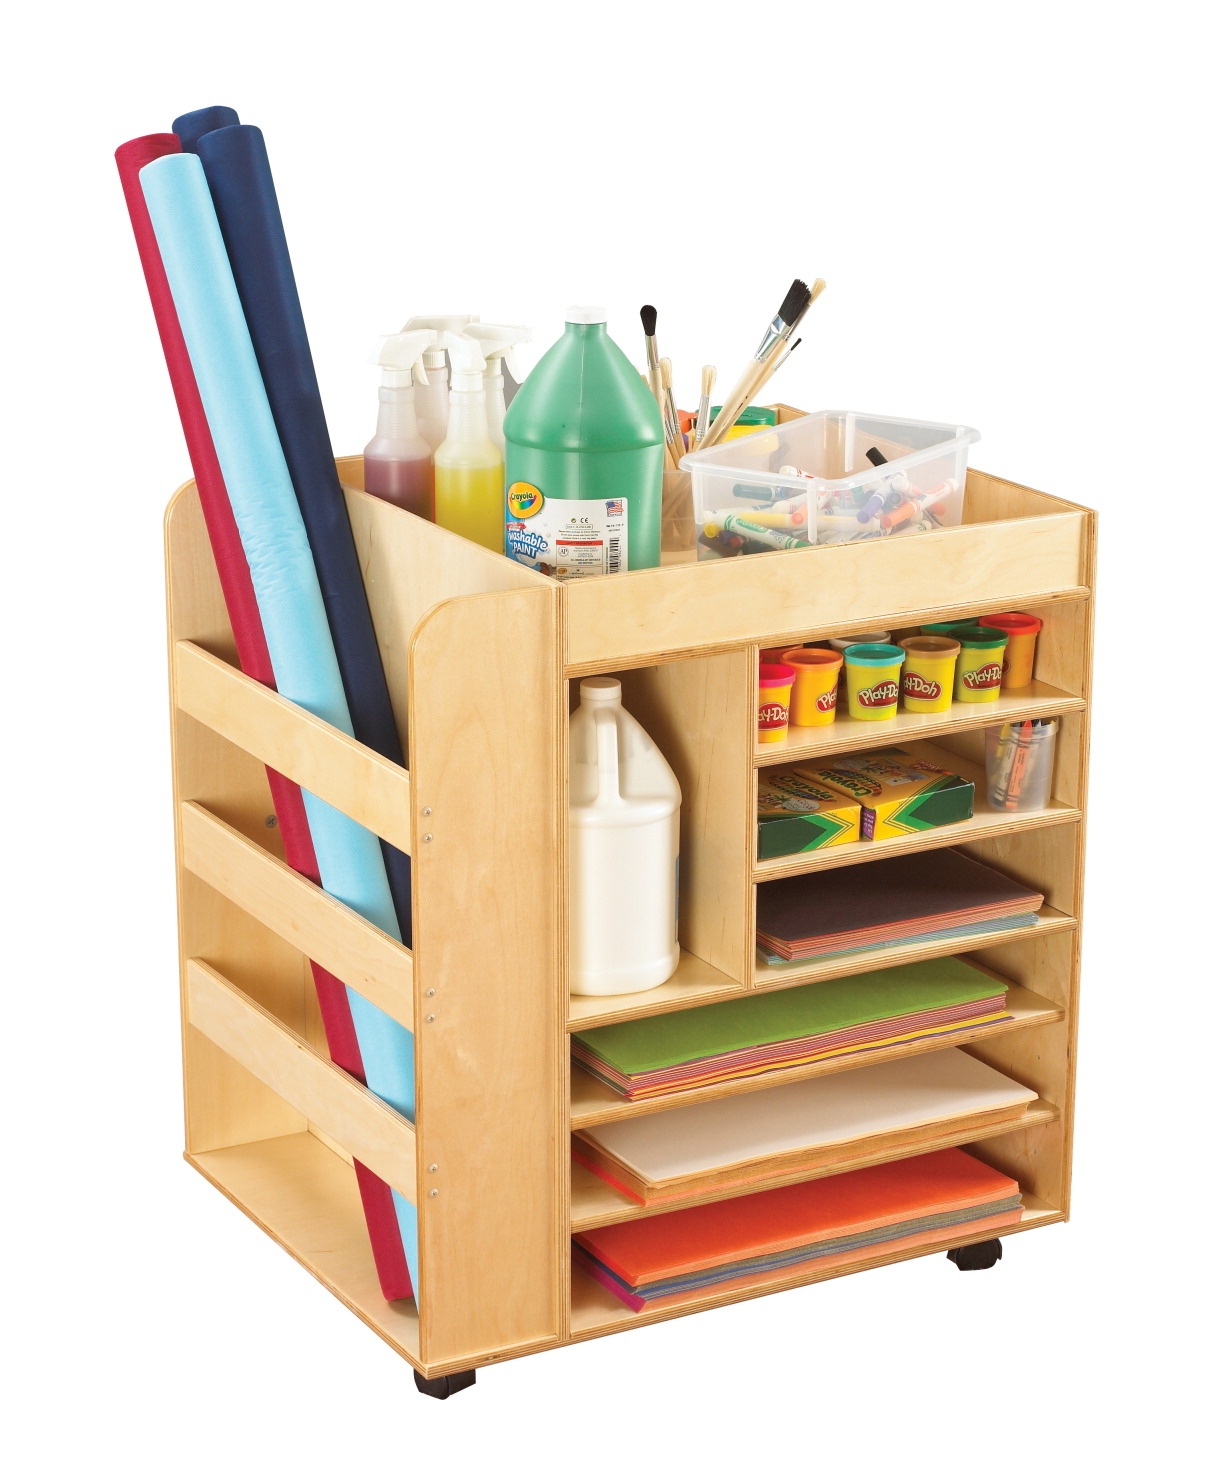 Childcraft mobile art cart school specialty marketplace childcraft mobile art cart 30 w x 24 d x 33 h in sciox Images